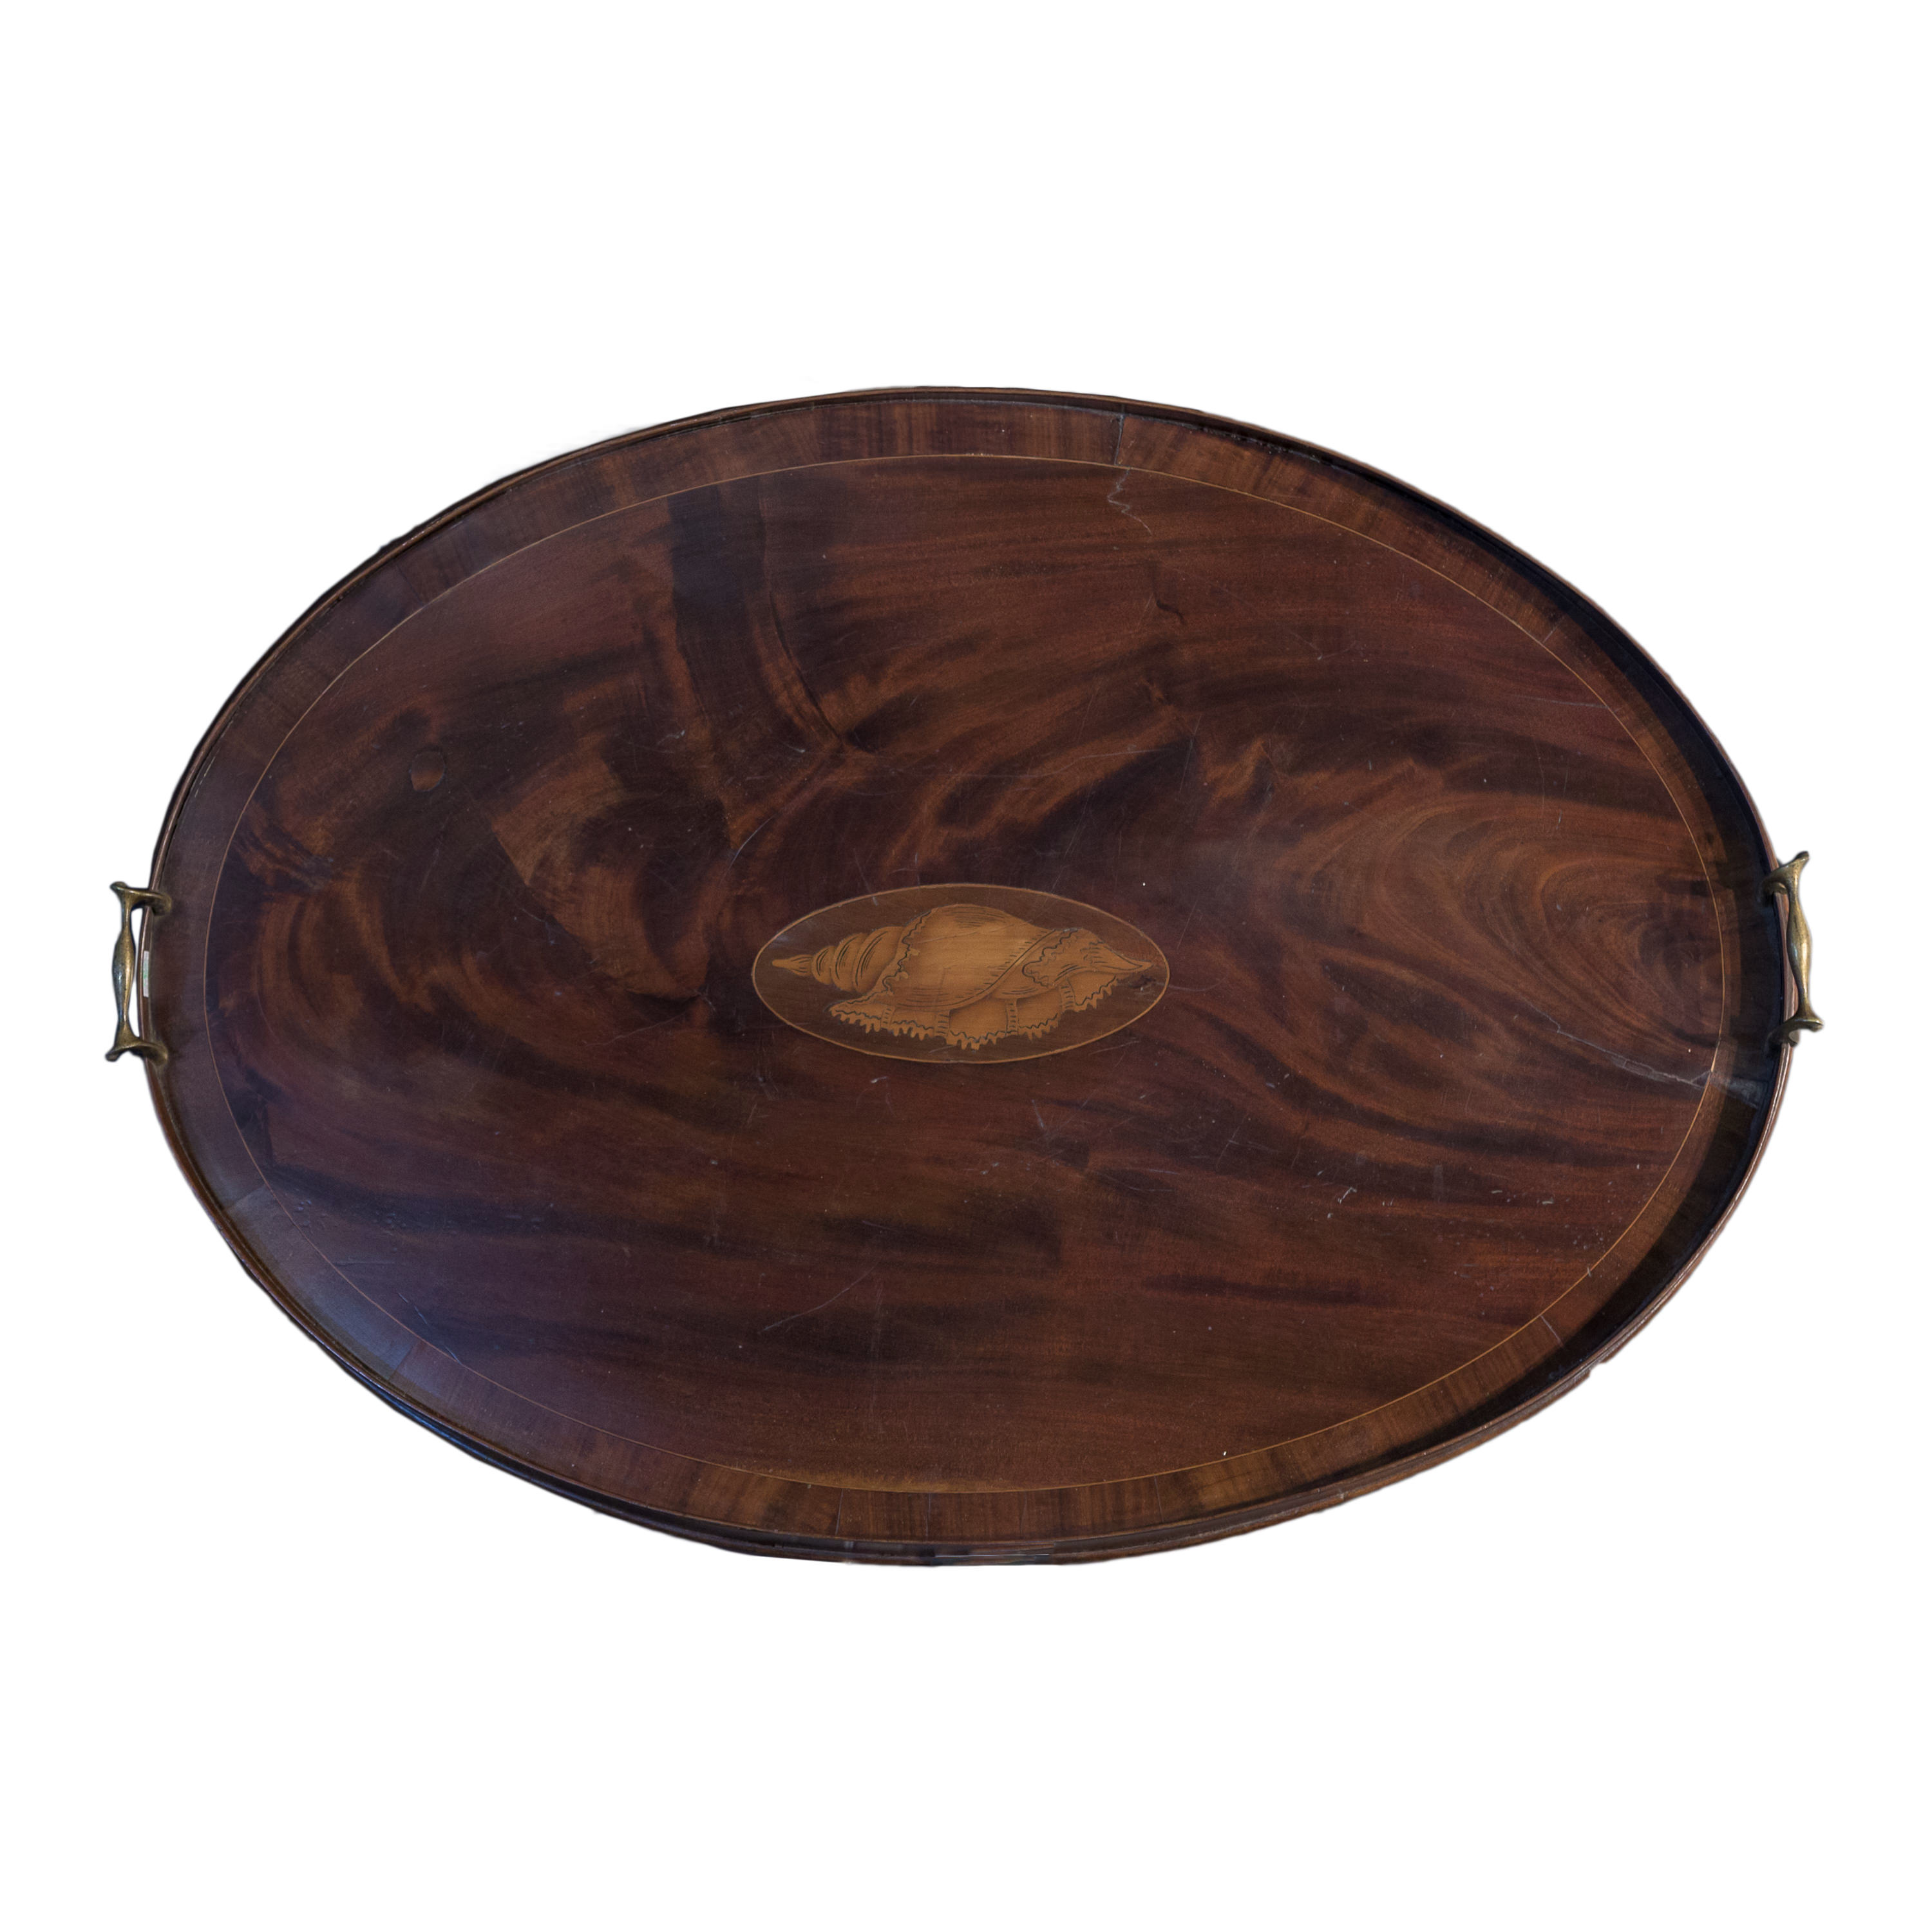 'George III Crossbanded and Boxwood Strung Mahogany Butlers Tray with Inlaid Shell Motif Circa 1800'